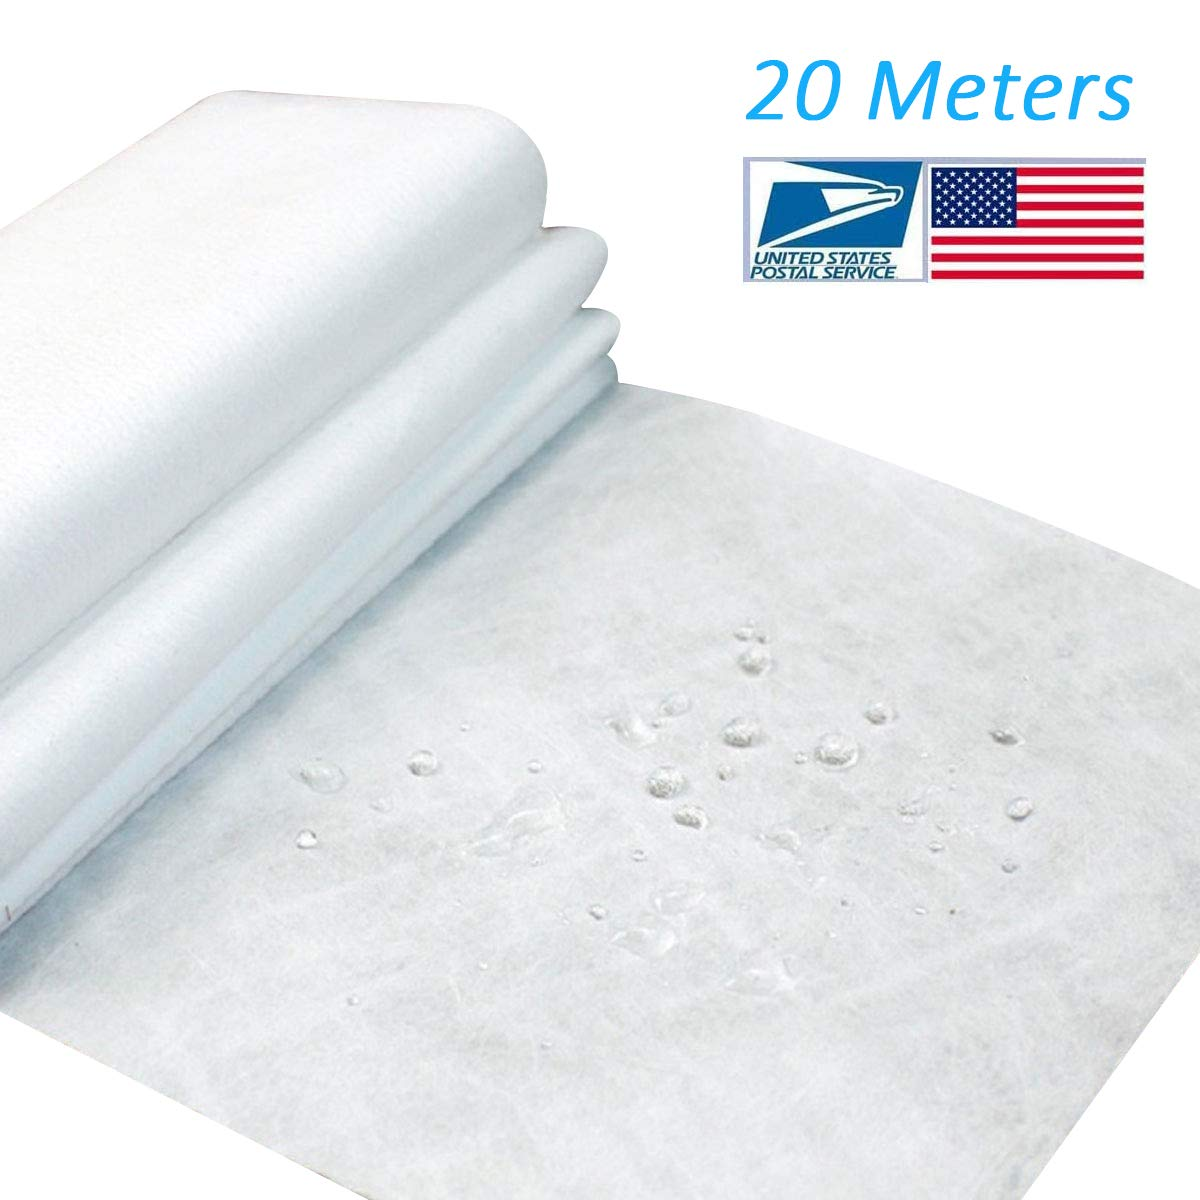 Non-Woven Fabric Microfiber Melt-Blown Cloth, Disposable Middle Layer Filter Fabric Polypropylene Sediment Filters for Filtering Layer Application, Filtering Efficiency Greater Than 95% (20M)